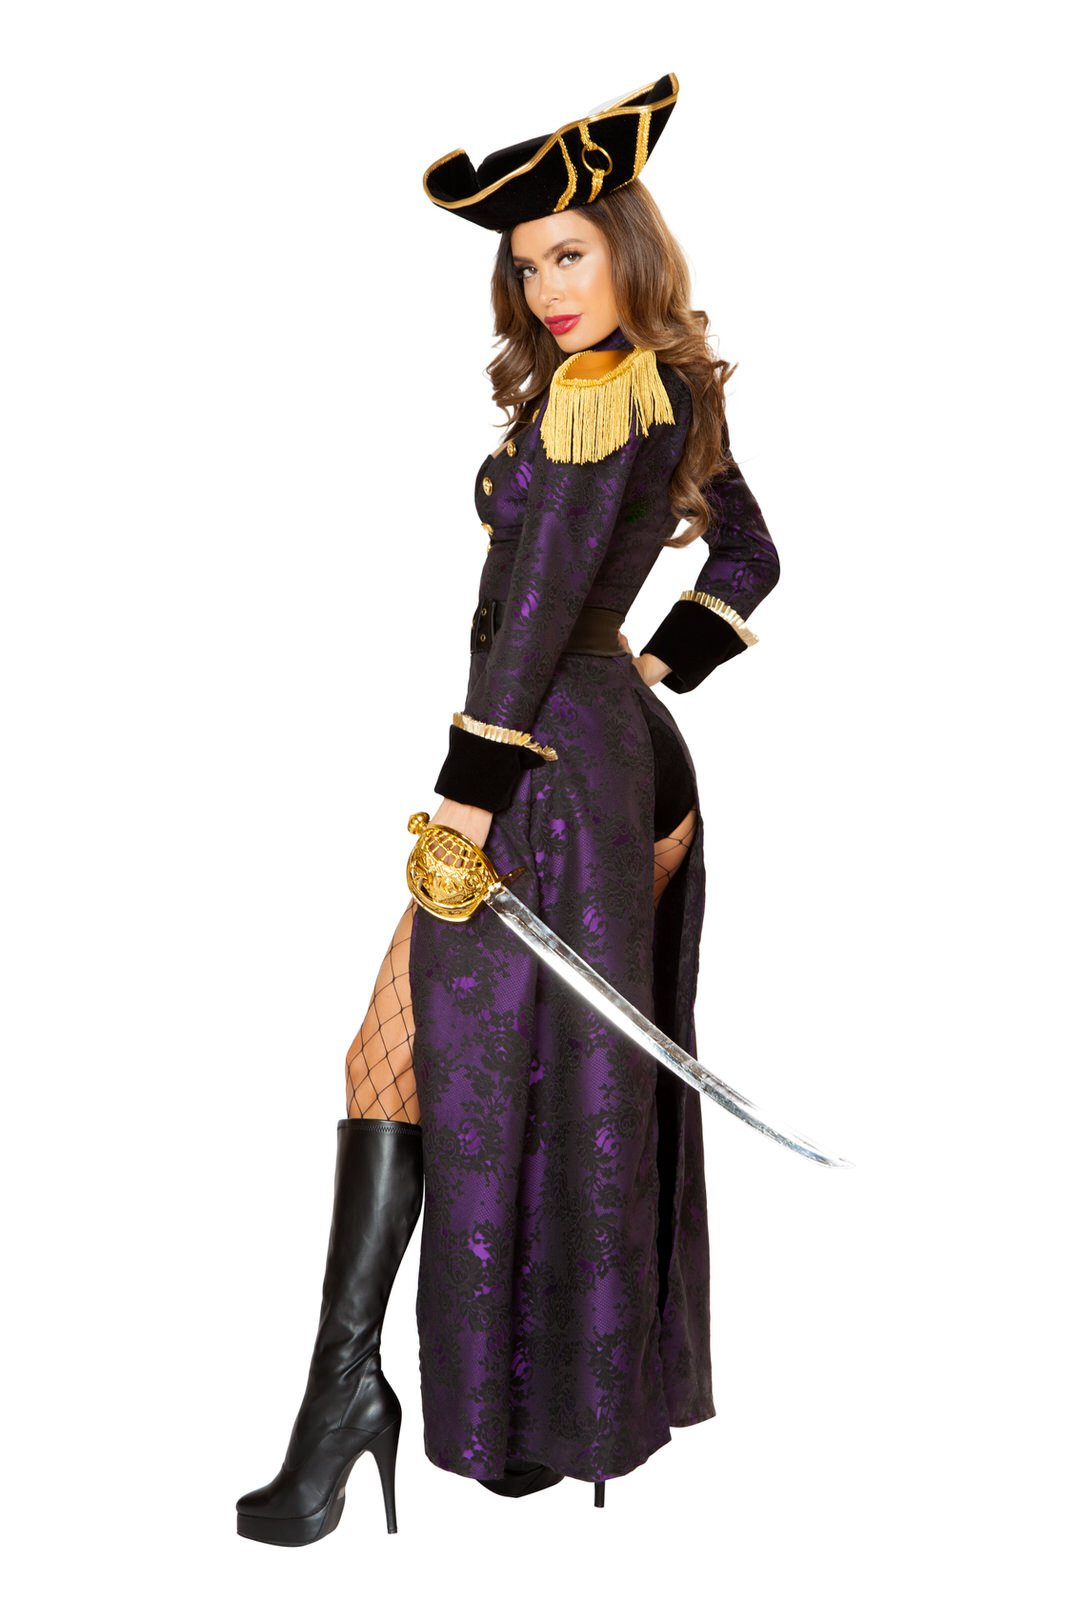 10104 - Confidential Society 4pc Pirate Queen Costume